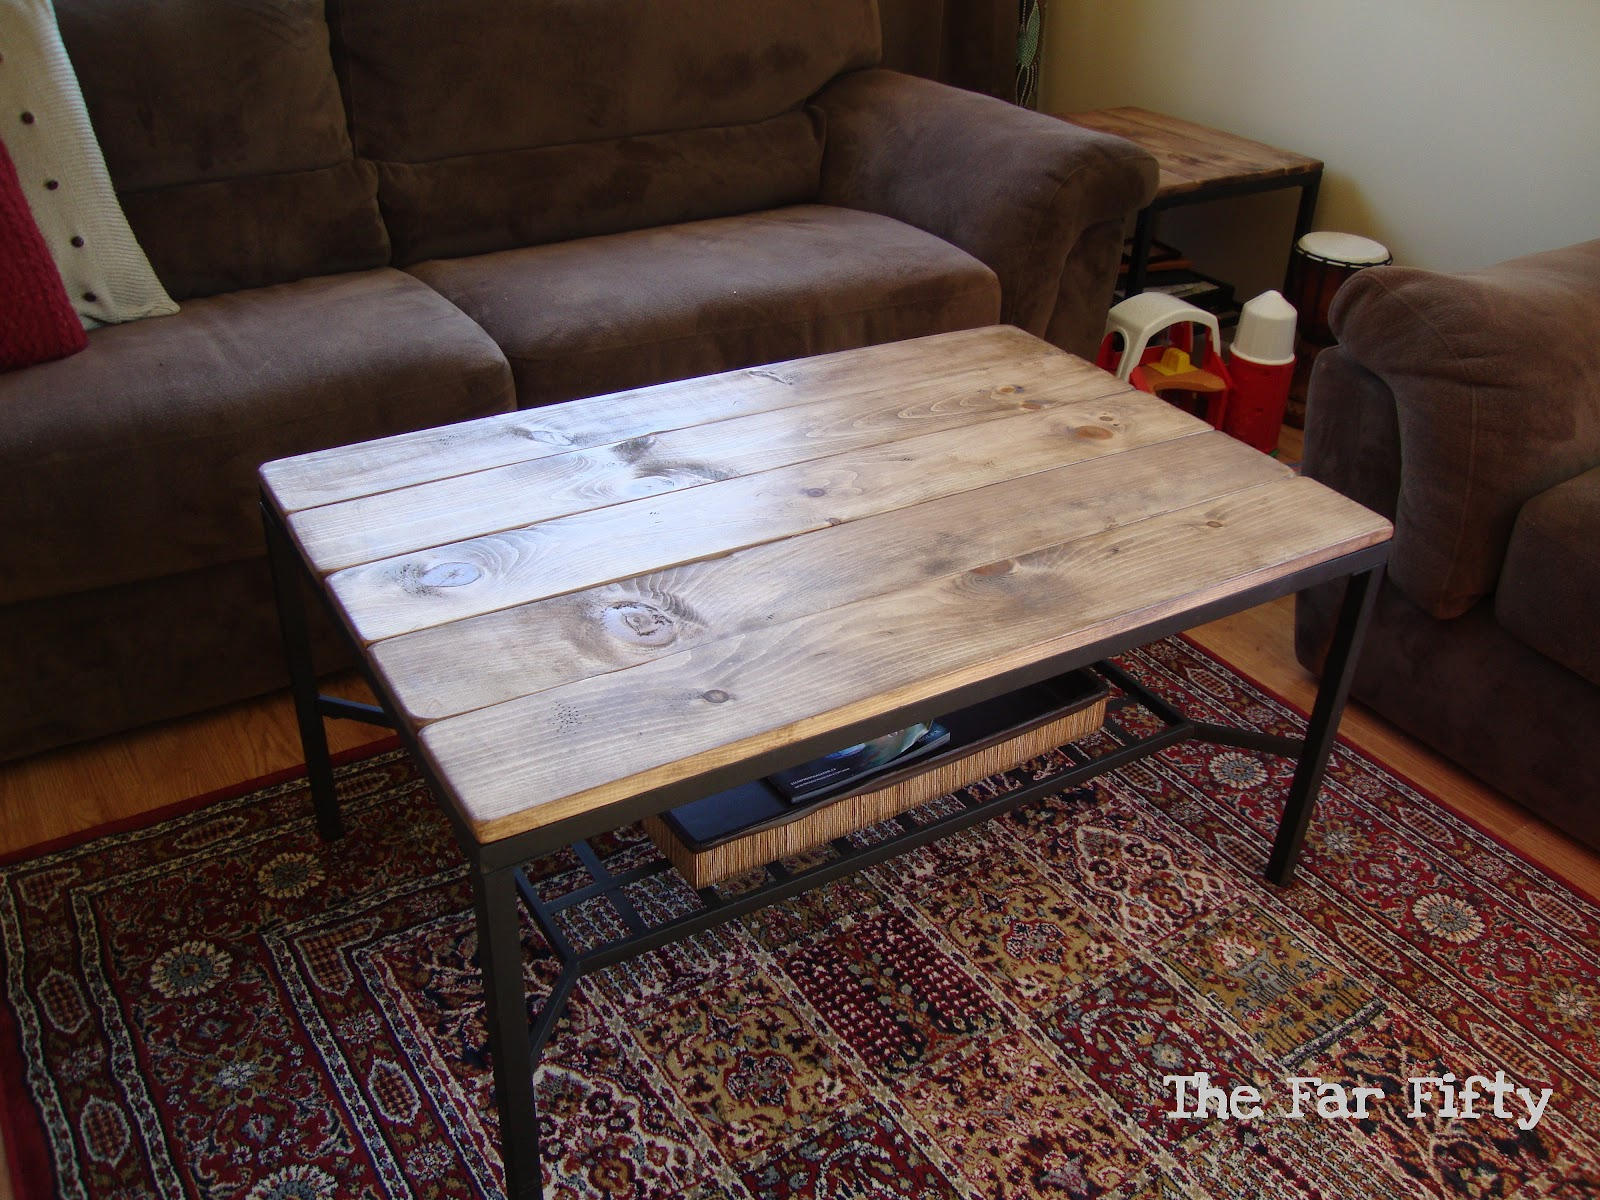 The Far Fifty: Coffee table/Ikea hack